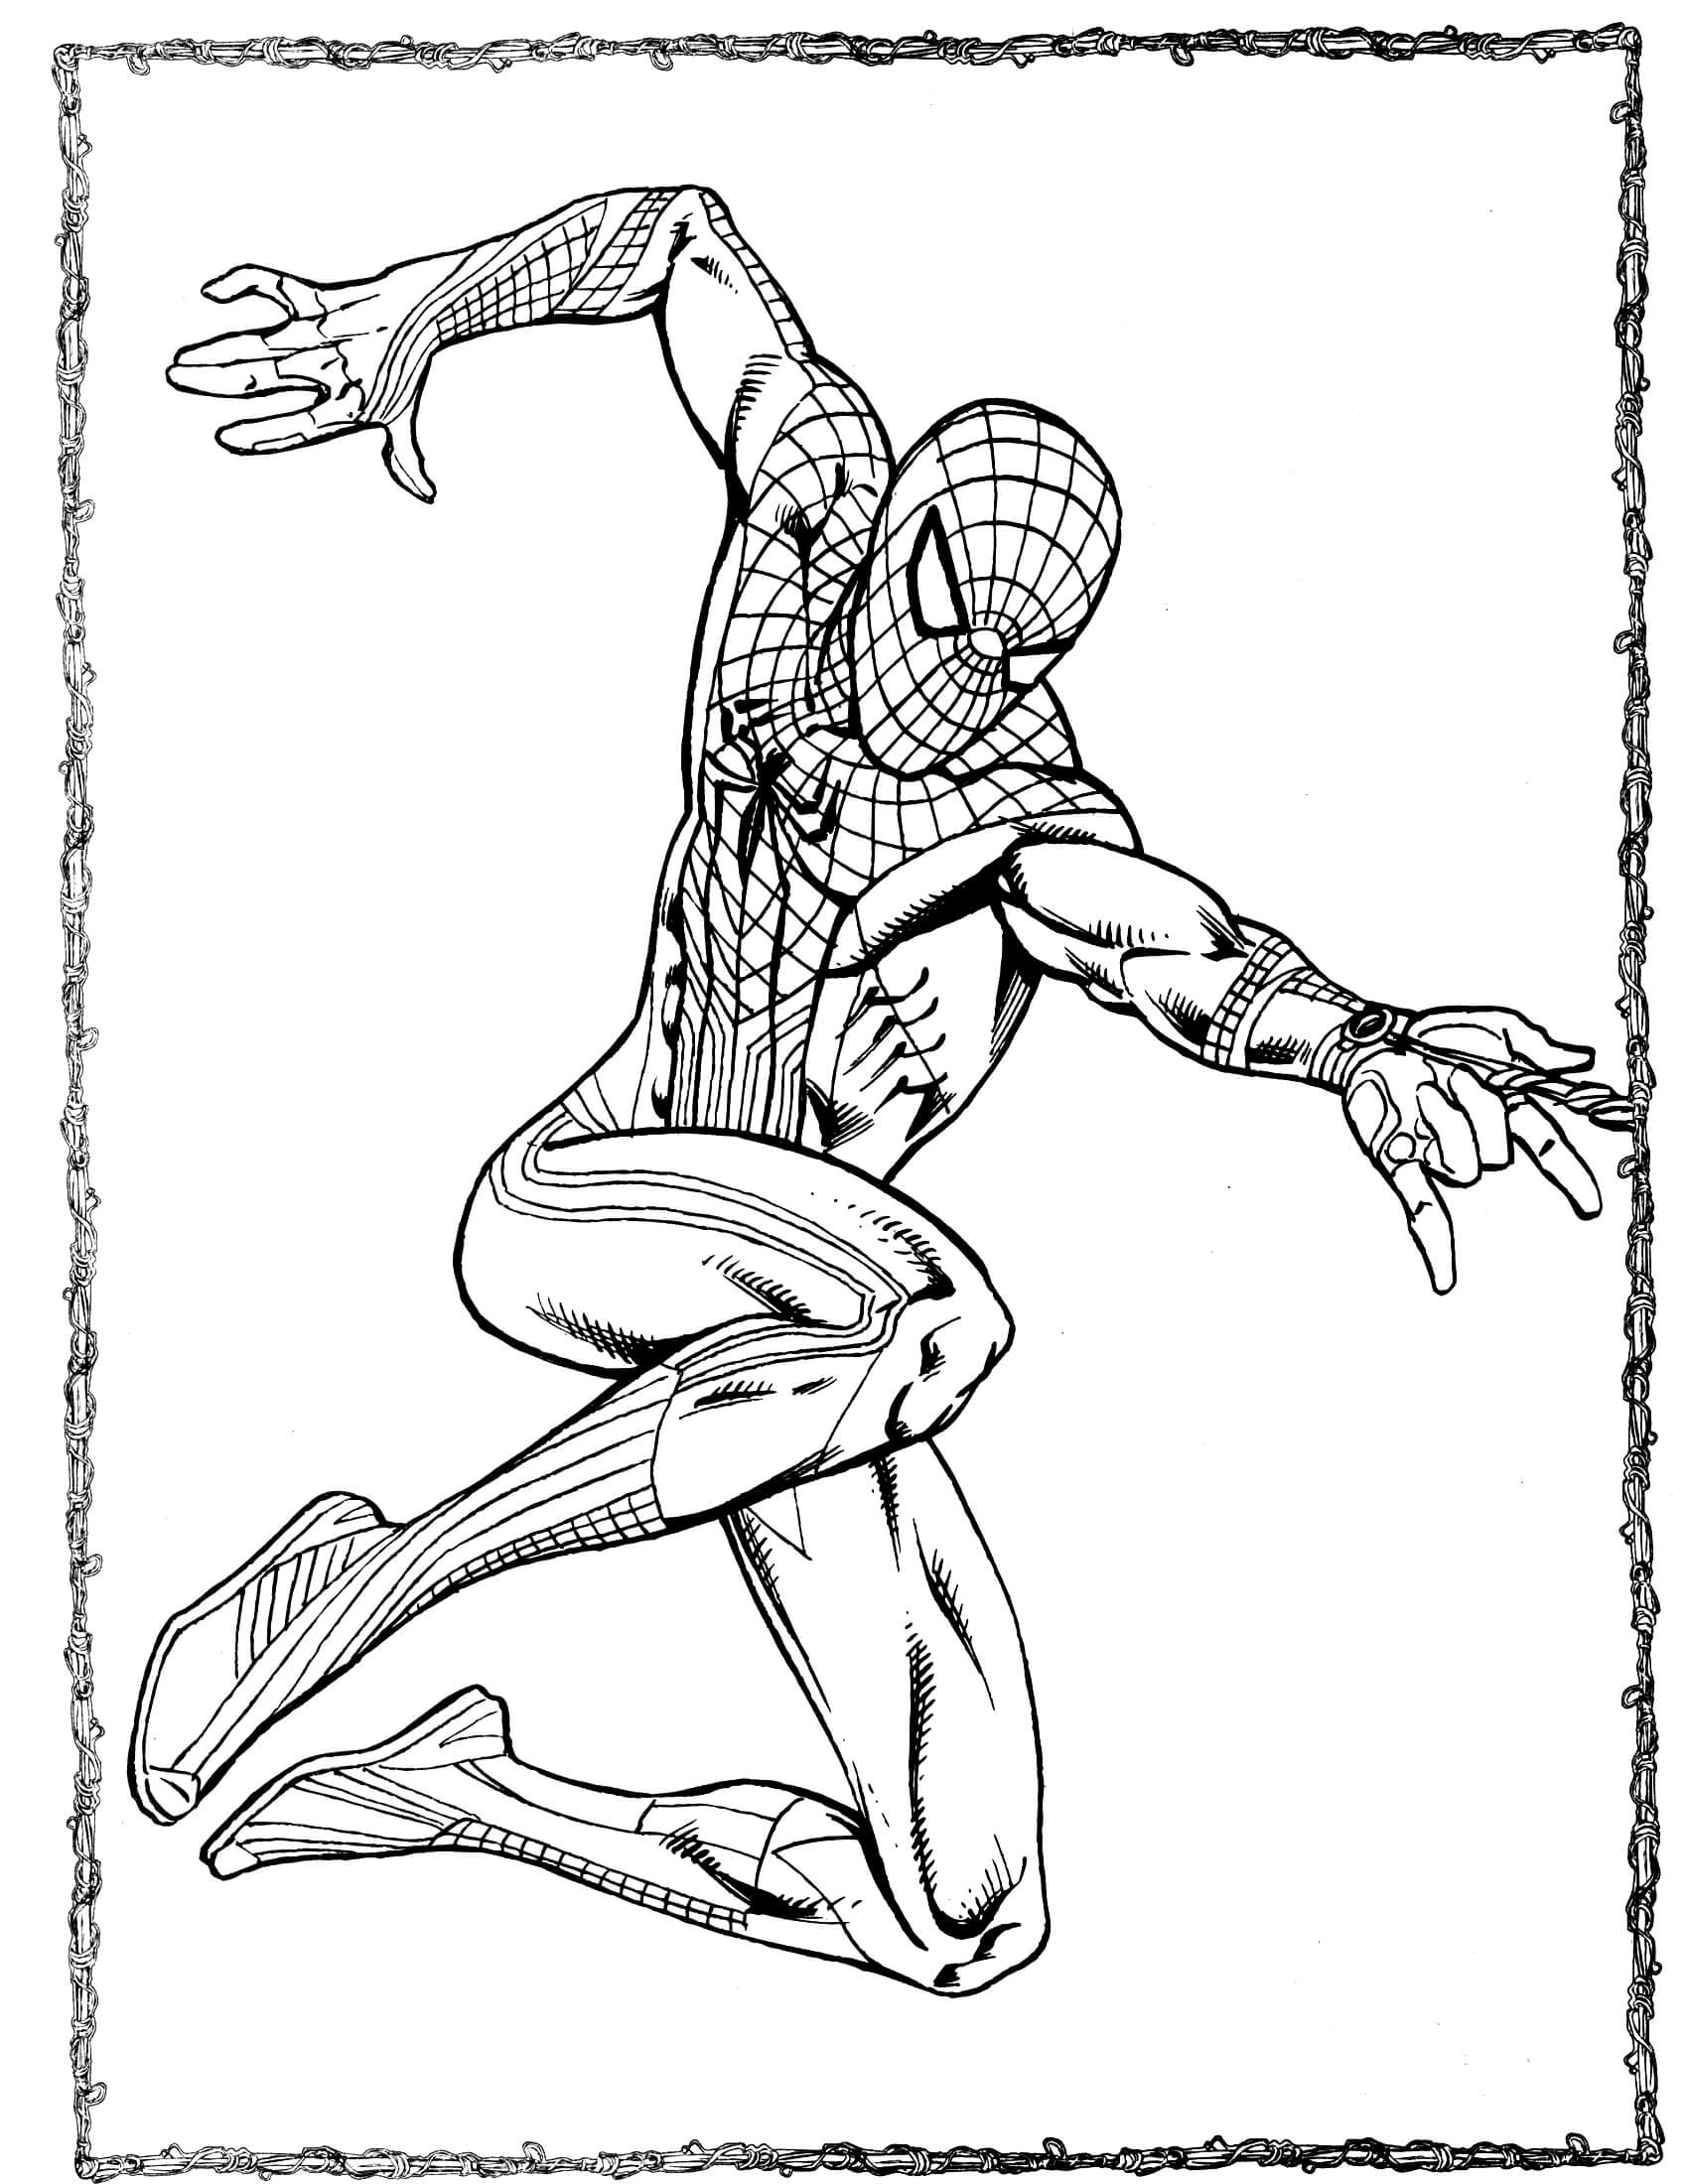 amazing spider man coloring pages the amazing spider man coloring pages coloring amazing spider man pages